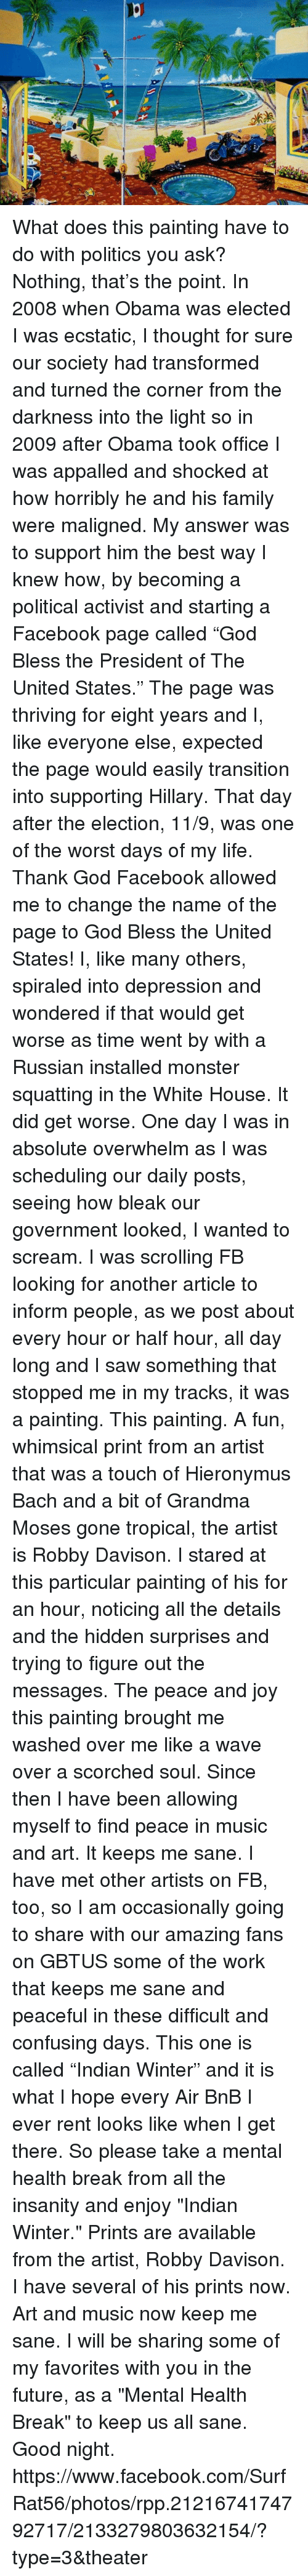 """Appalled, Facebook, and Family: What does this painting have to do with politics you ask? Nothing, that's the point. In 2008 when Obama was elected I was ecstatic, I thought for sure our society had transformed and turned the corner from the darkness into the light so in 2009 after Obama took office I was appalled and shocked at how horribly he and his family were maligned. My answer was to support him the best way I knew how, by becoming a political activist and starting a Facebook page called """"God Bless the President of The United States."""" The page was thriving for eight years and I, like everyone else, expected the page would easily transition into supporting Hillary. That day after the election, 11/9, was one of the worst days of my life. Thank God Facebook allowed me to change the name of the page to God Bless the United States! I, like many others, spiraled into depression and wondered if that would get worse as time went by with a Russian installed monster squatting in the White House. It did get worse. One day I was in absolute overwhelm as I was scheduling our daily posts, seeing how bleak our government looked, I wanted to scream. I was scrolling FB looking for another article to inform people, as we post about every hour or half hour, all day long and I saw something that stopped me in my tracks, it was a painting. This painting. A fun, whimsical print from an artist that was a touch of Hieronymus Bach and a bit of Grandma Moses gone tropical, the artist is Robby Davison. I stared at this particular painting of his for an hour, noticing all the details and the hidden surprises and trying to figure out the messages. The peace and joy this painting brought me washed over me like a wave over a scorched soul. Since then I have been allowing myself to find peace in music and art. It keeps me sane. I have met other artists on FB, too, so I am occasionally going to share with our amazing fans on GBTUS some of the work that keeps me sane and peaceful in these dif"""